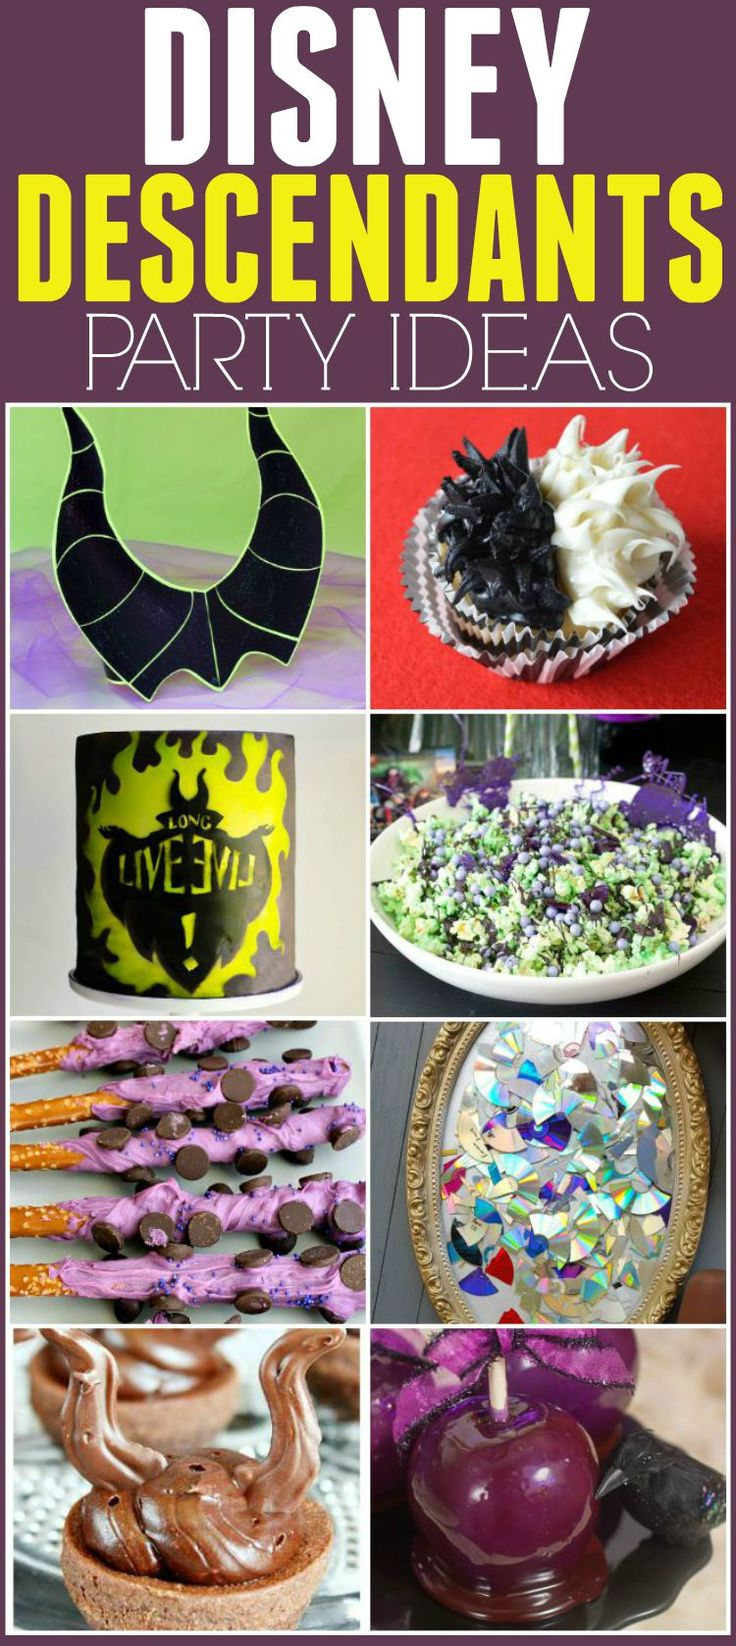 Throwing a Disney Descendants birthday party or Halloween party? These fun ideas are perfect for that. Plus great for a evil villains party too. Edit description Throwing a Disney Descendants birthday party or Halloween party? These fun ideas are perfect for that. Plus great for a evil villains party too.